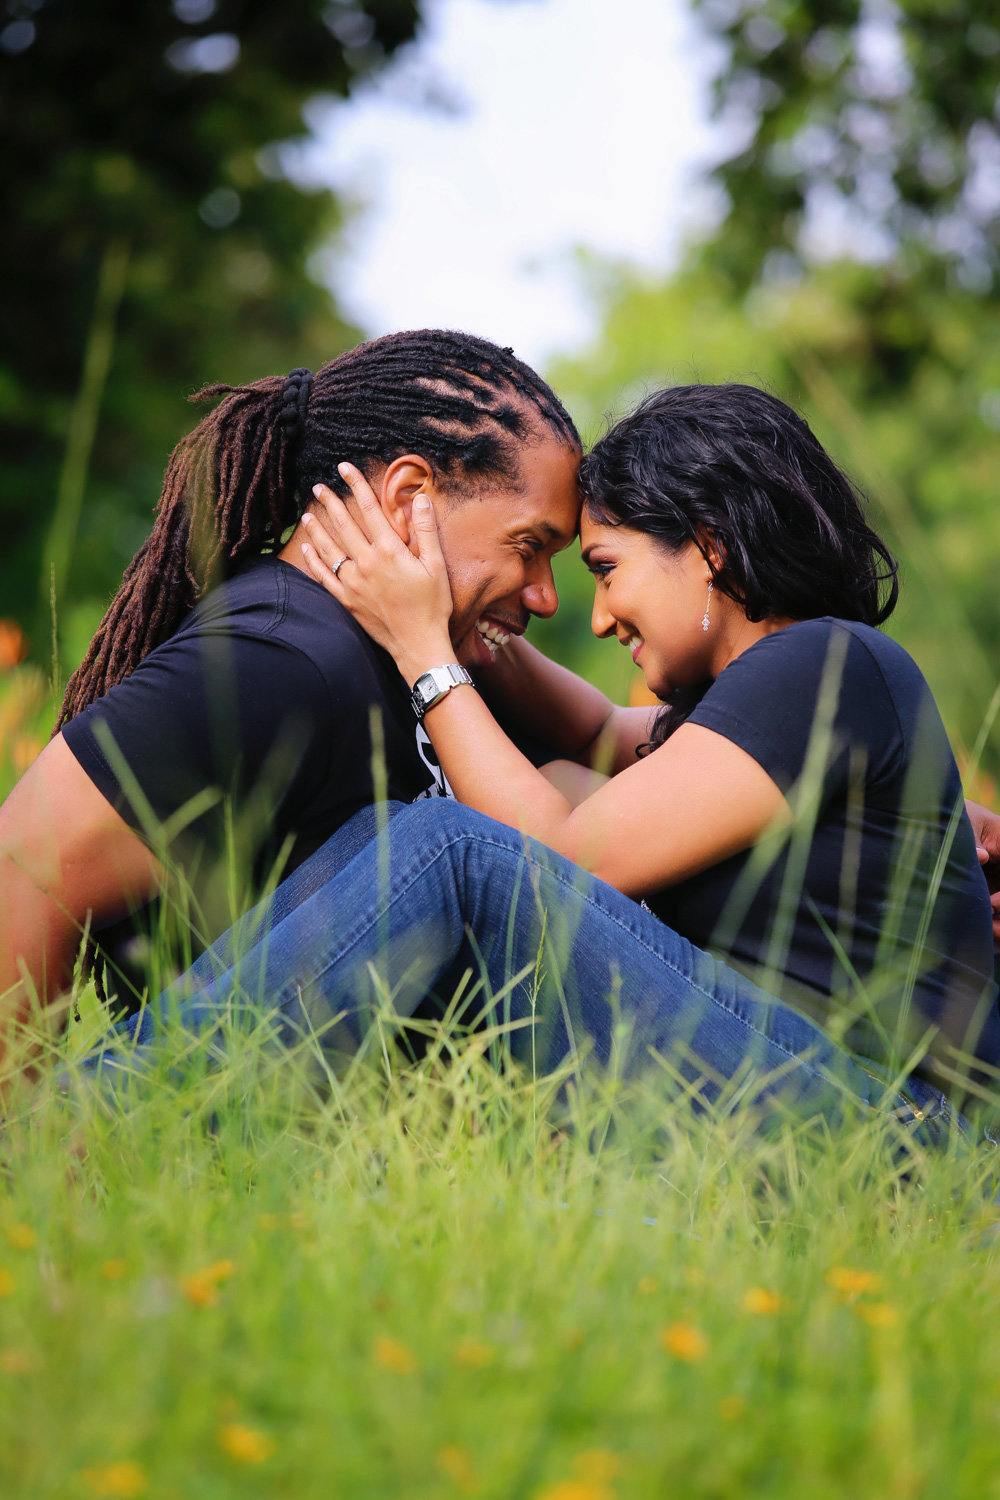 Couple sits together in idyllic field while gazing into each other's eyes. Photo by Ross Photography, Trinidad, W.I..